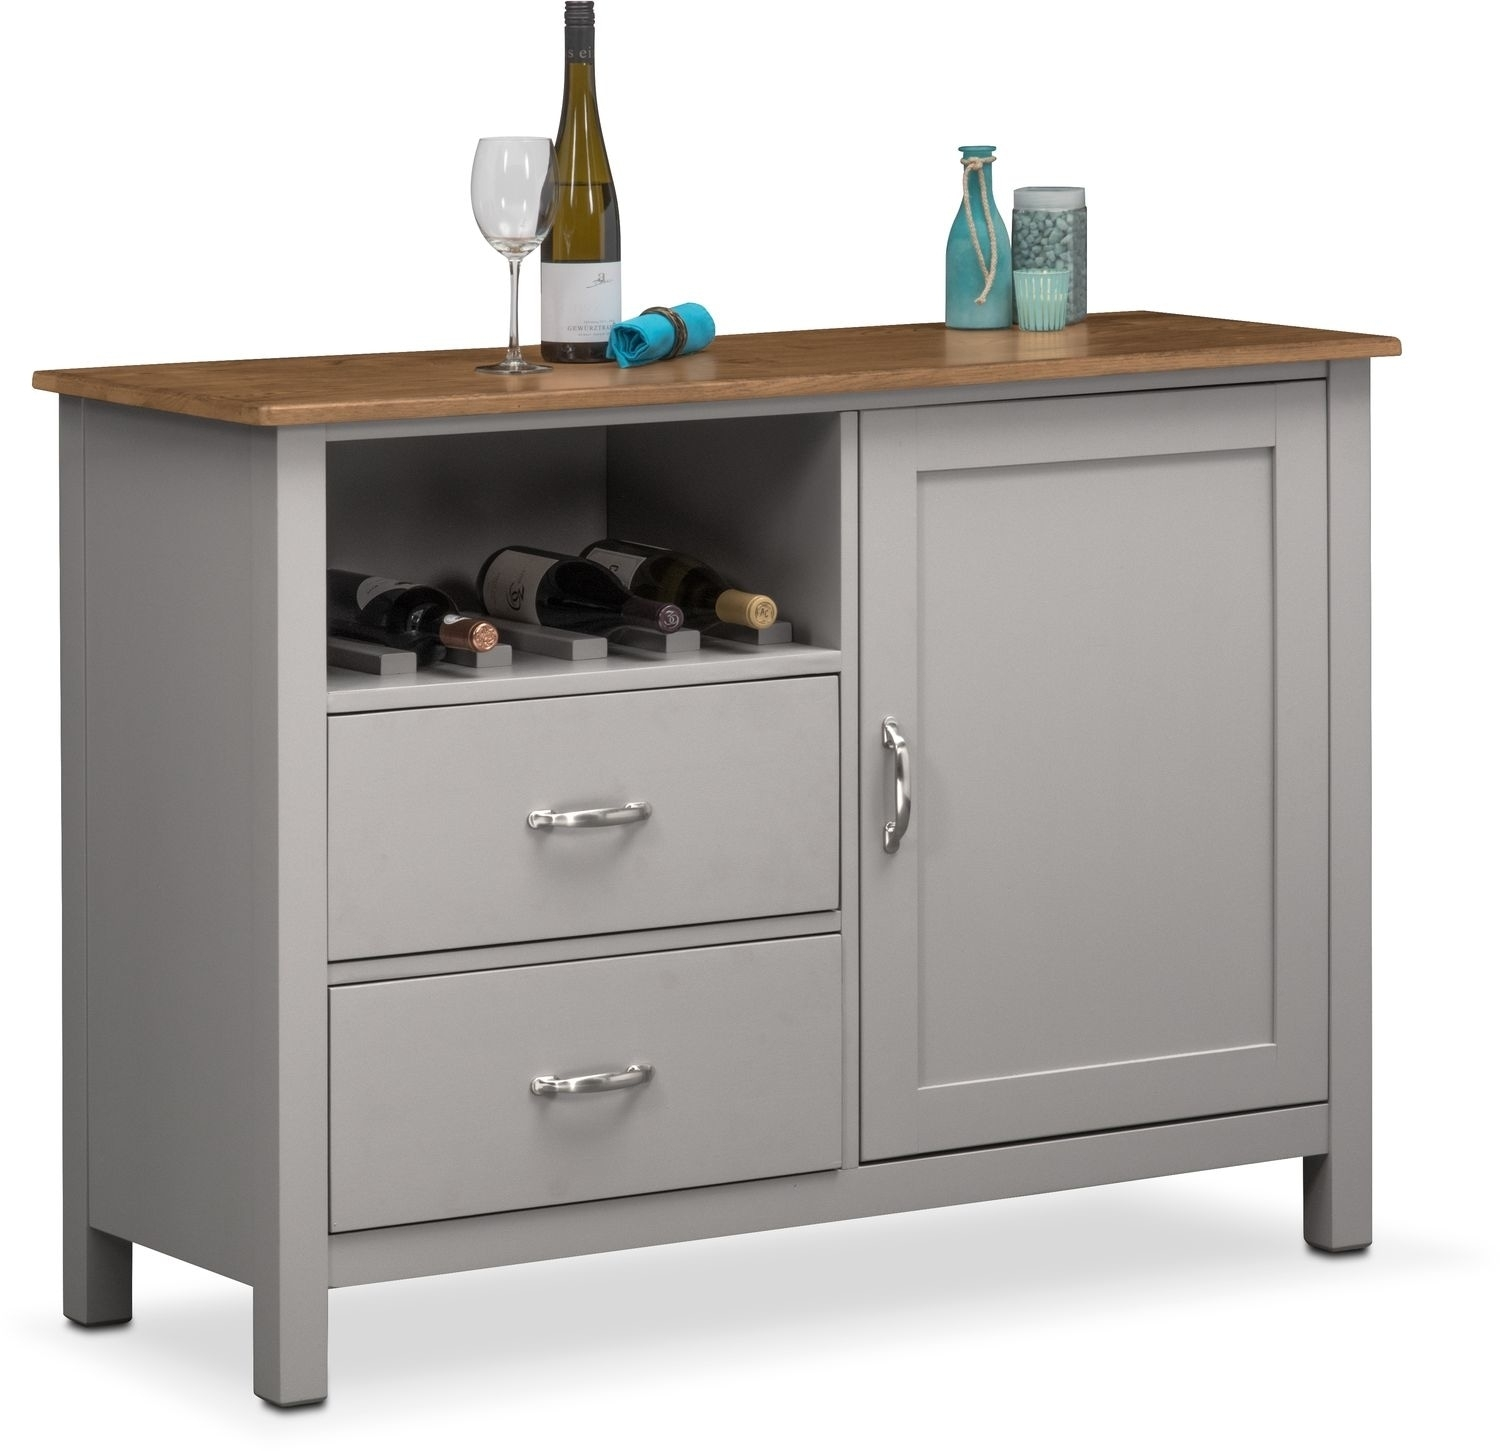 Buffet & Sideboard Cabinets | Value City Furniture And Mattresses with Blue Stone Light Rustic Black Sideboards (Image 4 of 30)